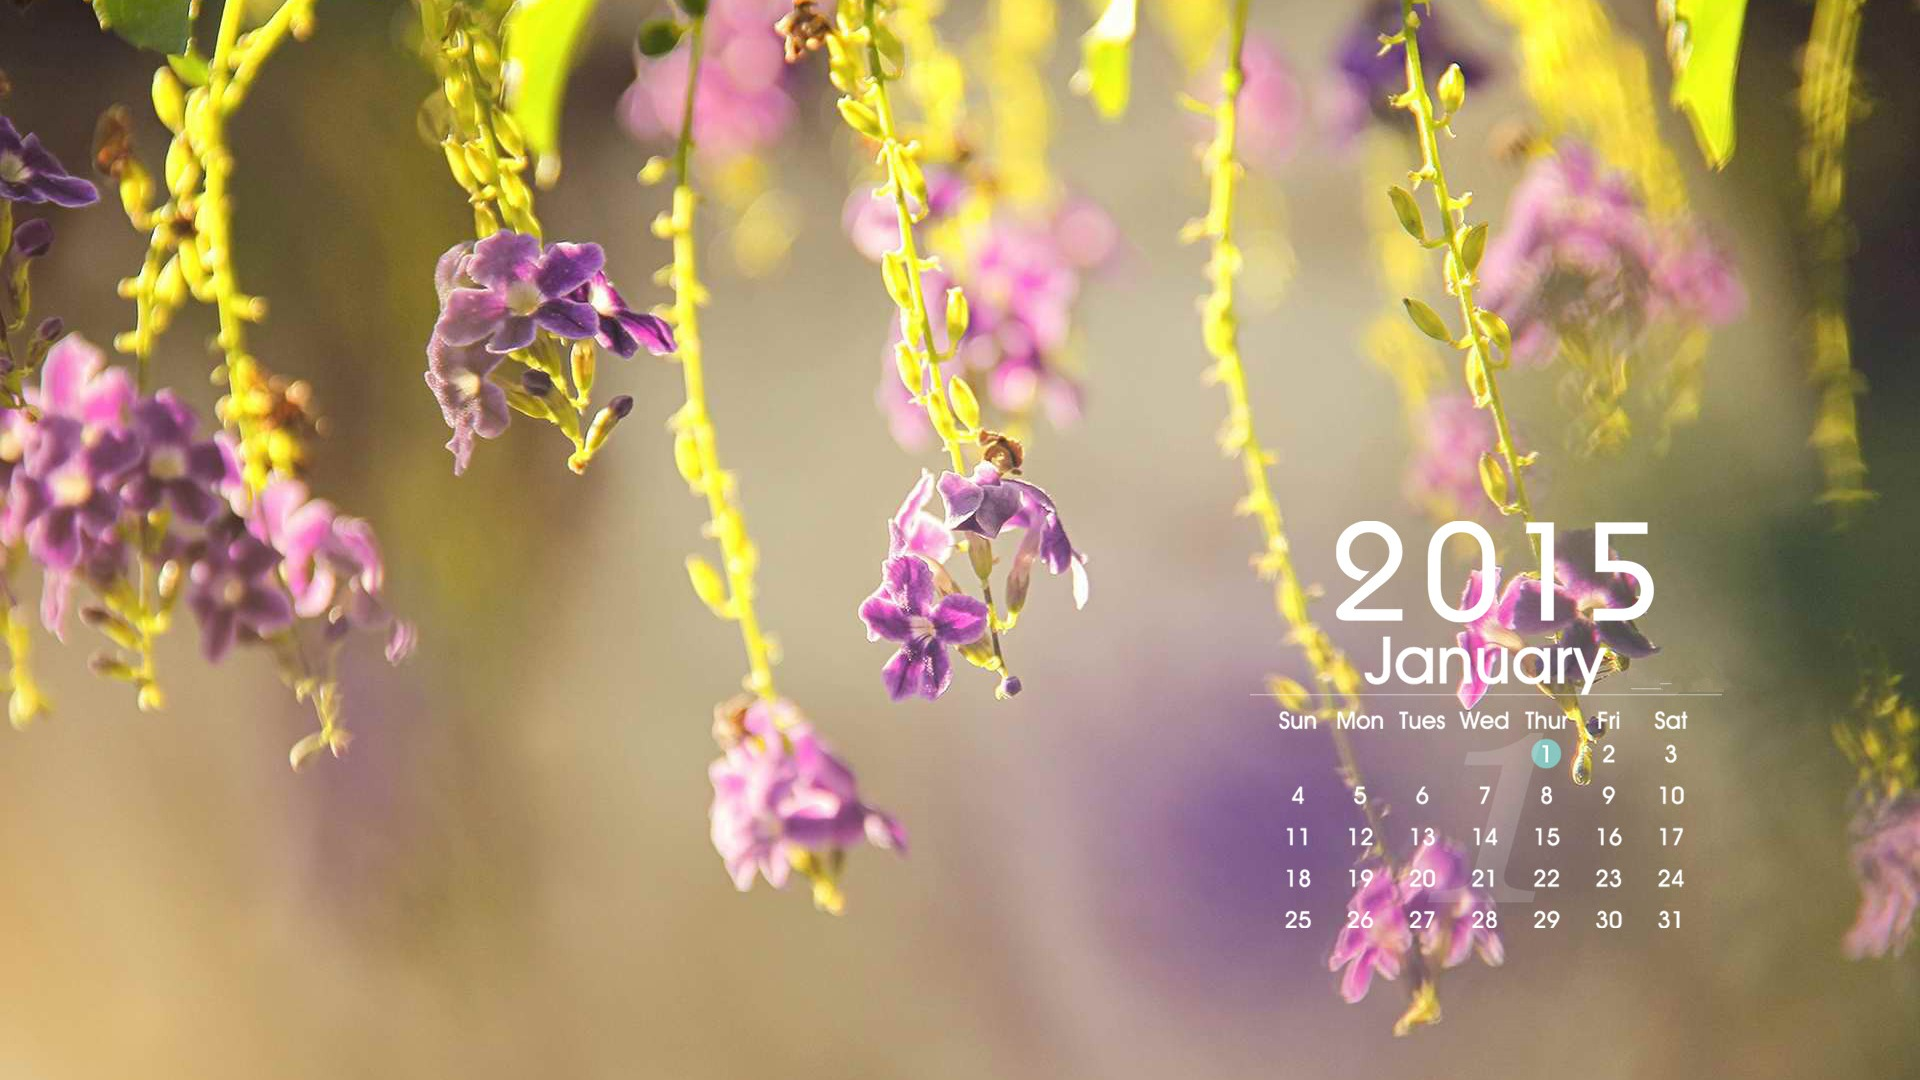 January Calendar For Wallpaper 2015/page/2 | New Calendar Template ...